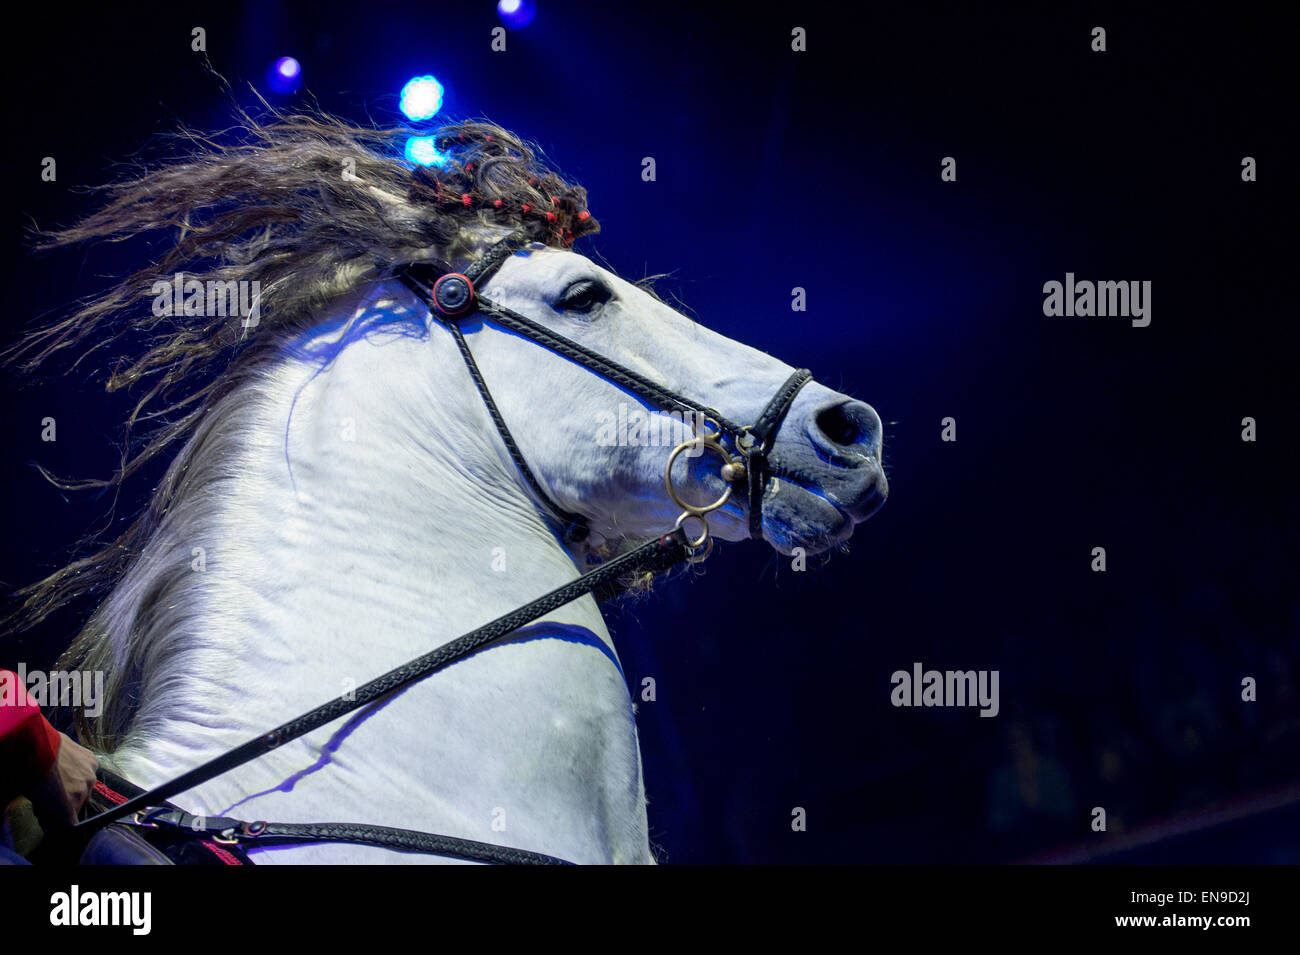 Horse in gallop - Stock Image